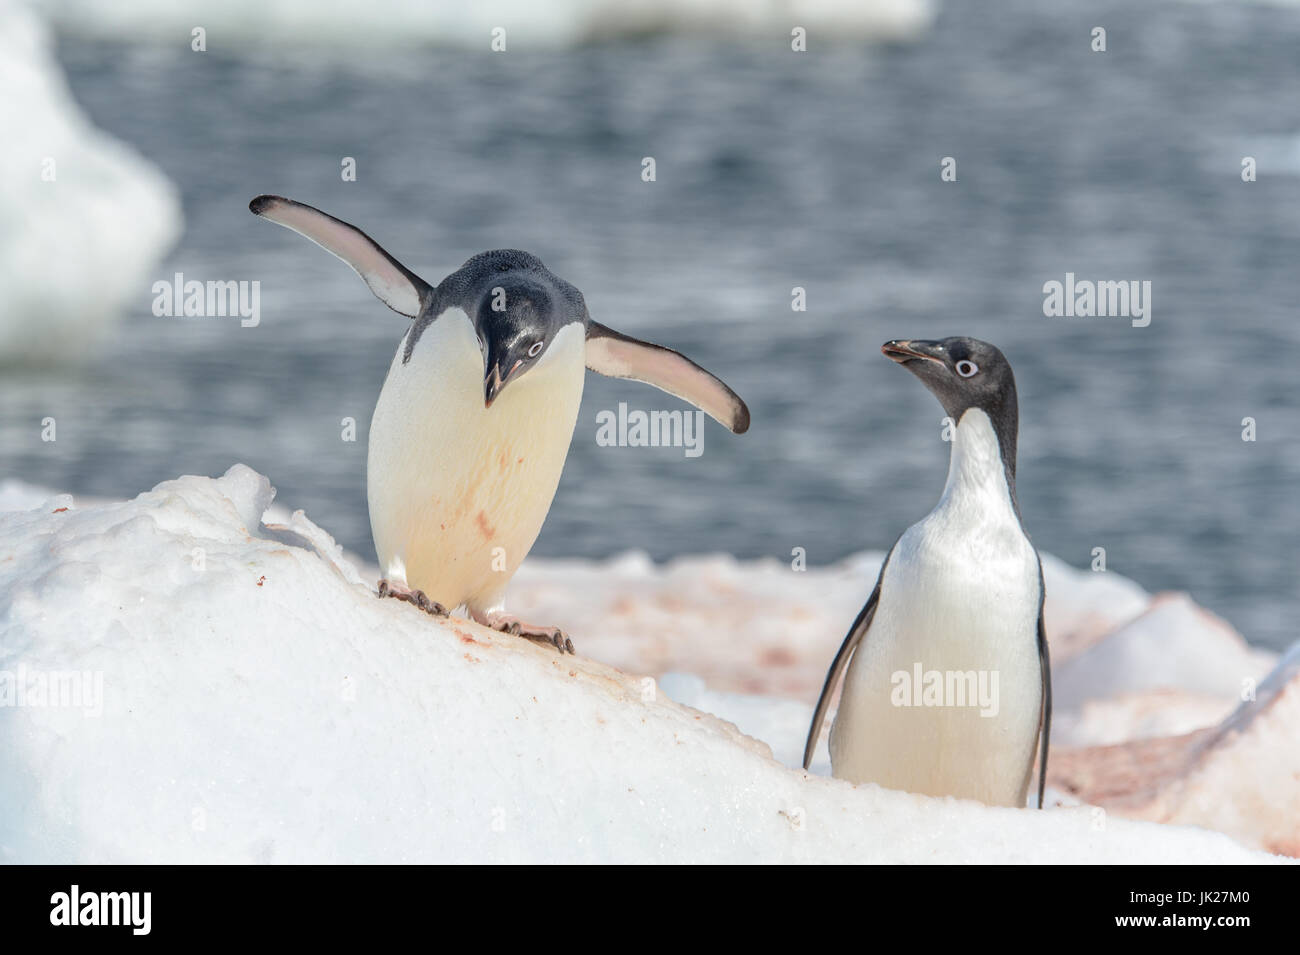 A pair of Adelie penguins on the ice in Antarctica - Stock Image